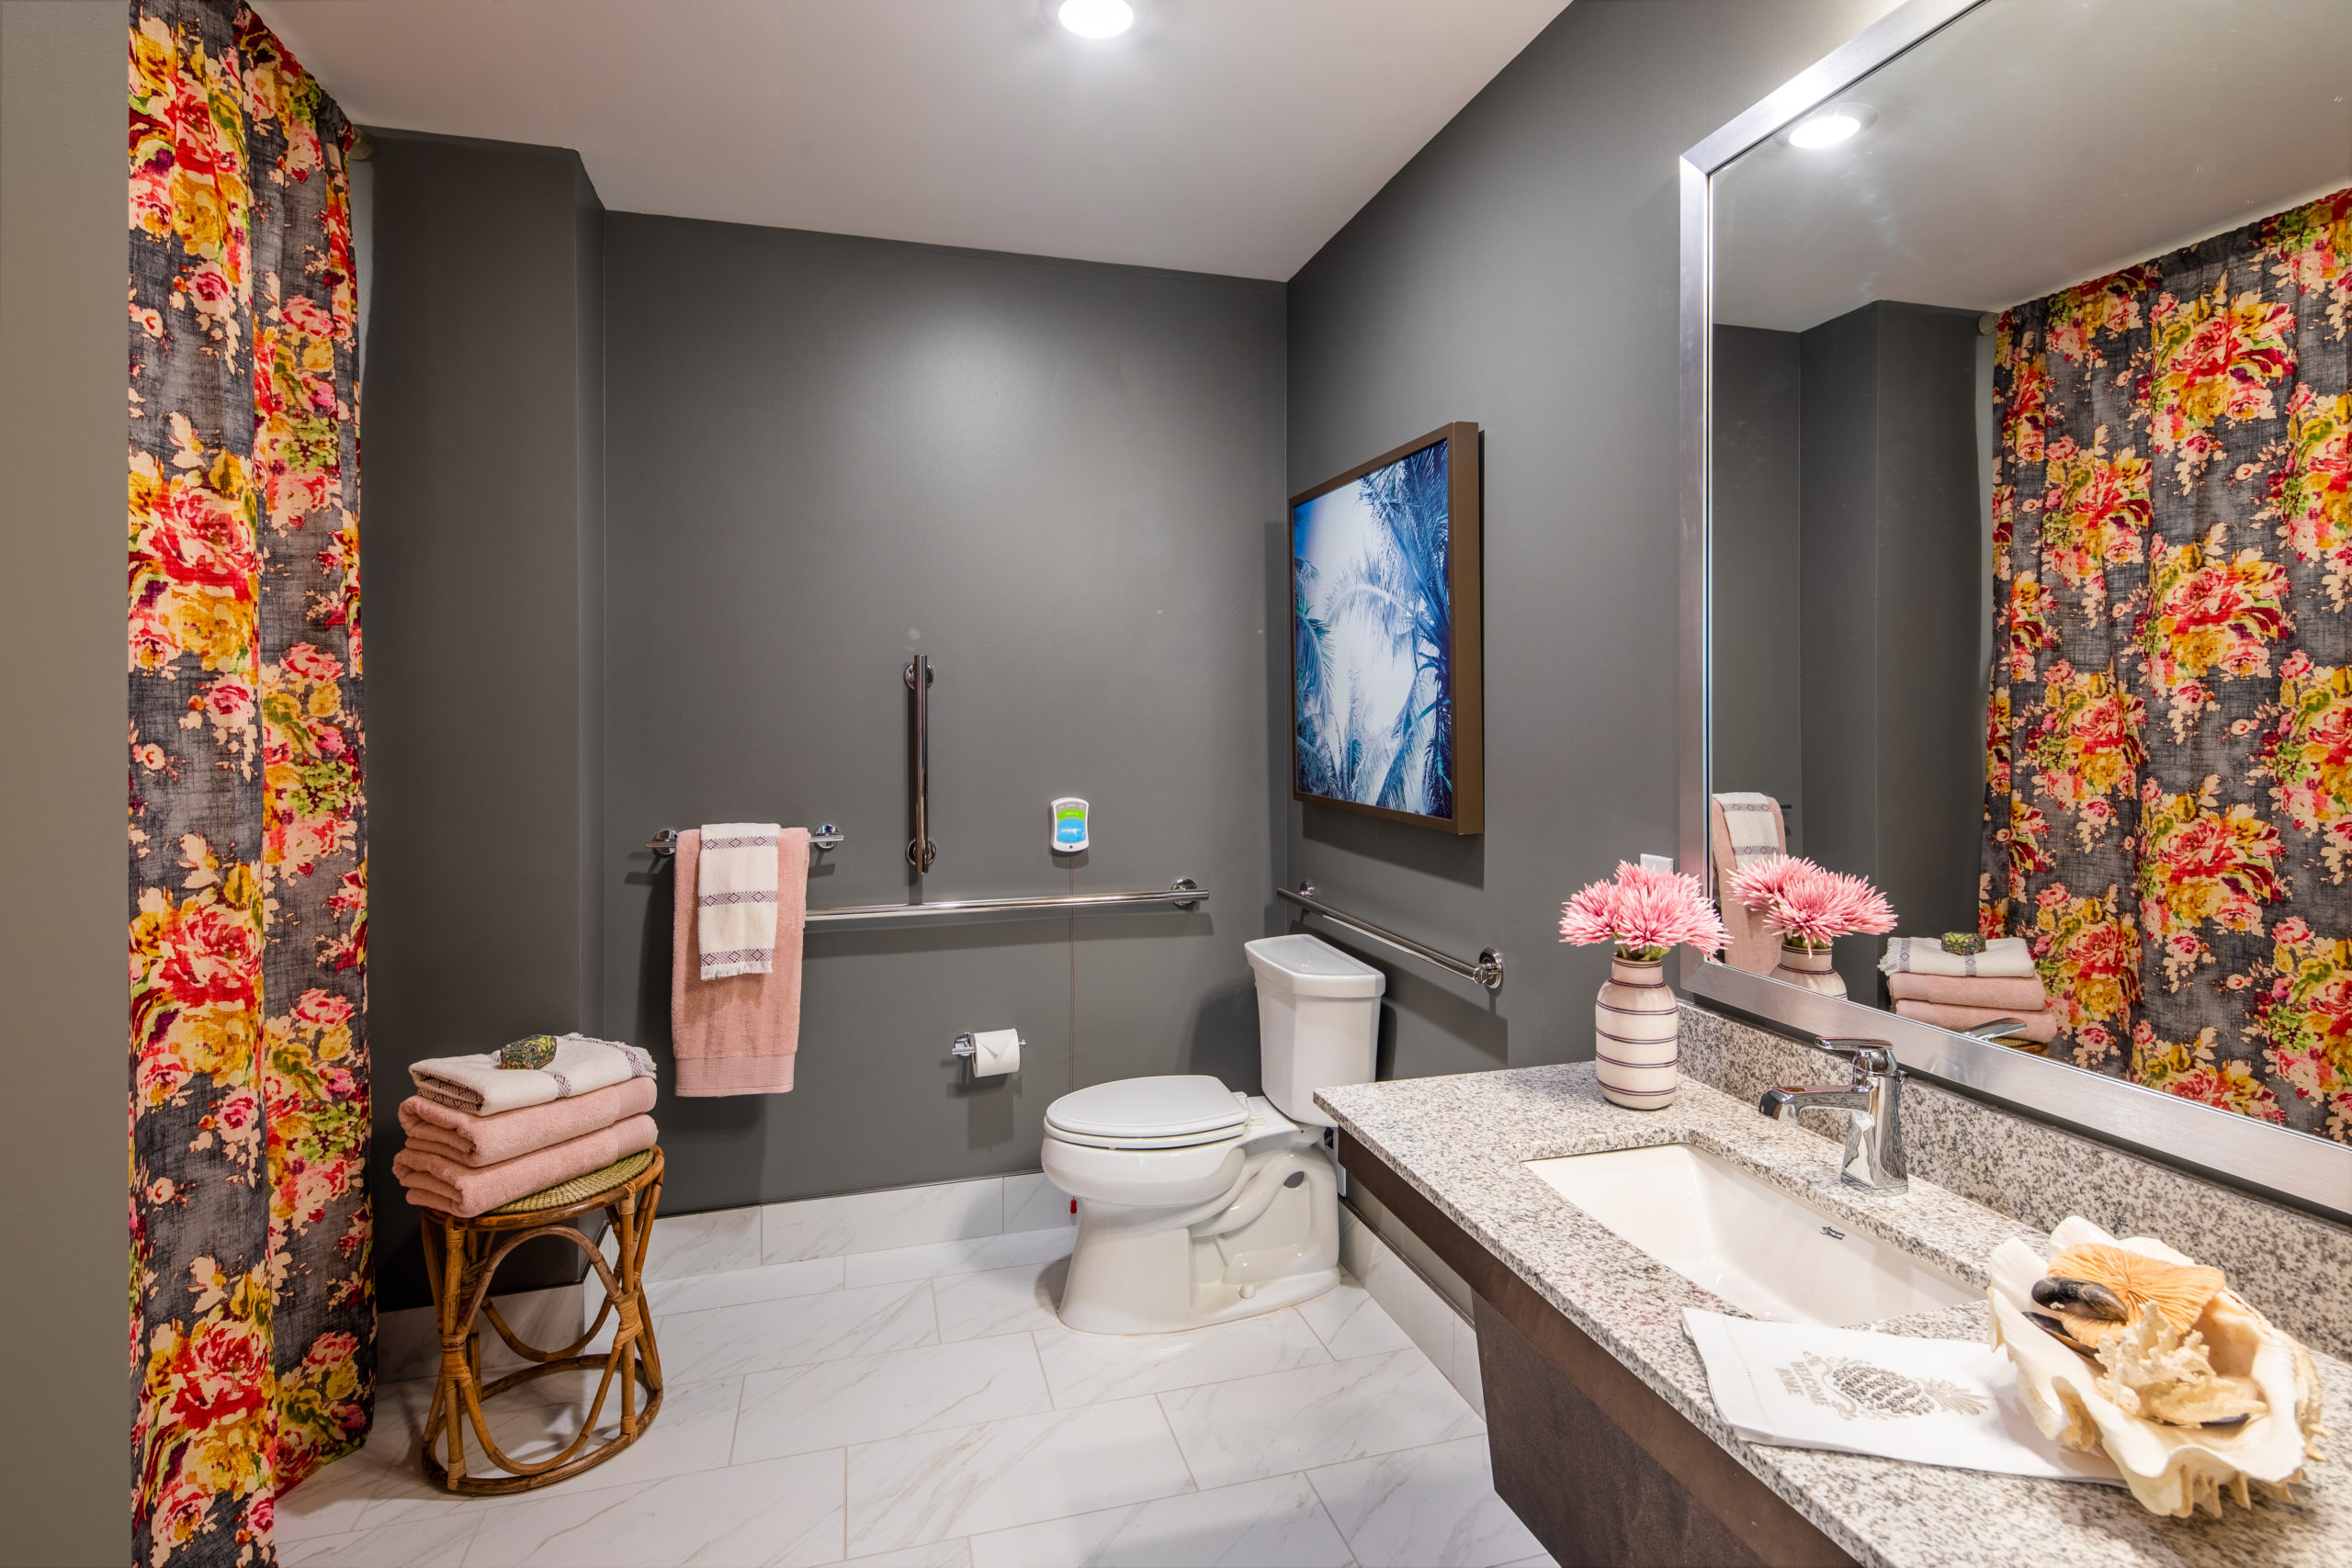 Bathroom vanity, toilet and shower with floral curtains, grey walls white floor in Longleaf assisted living model apartment